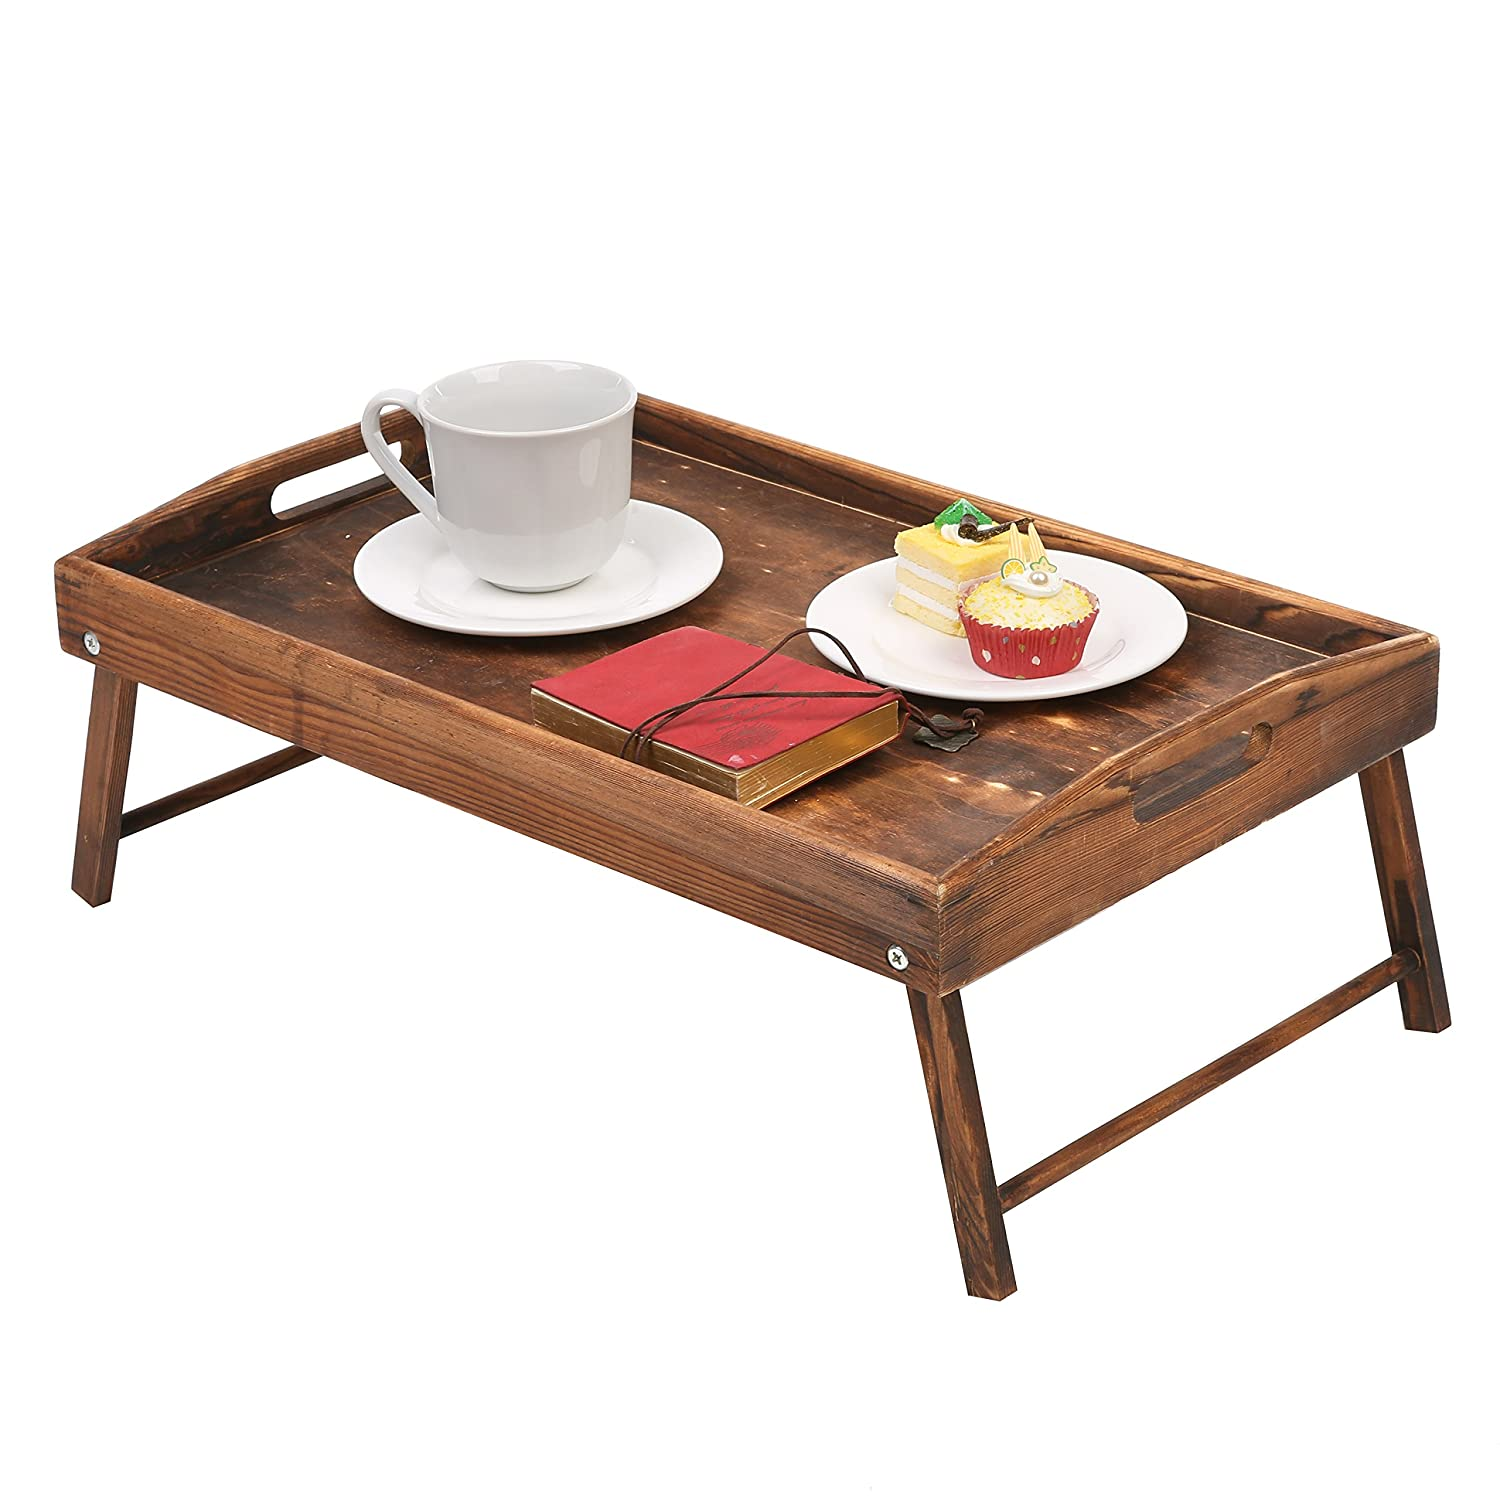 Country Rustic Torched Wood Food Serving Tray, Breakfast in Bed Table with Folding Legs MyGift